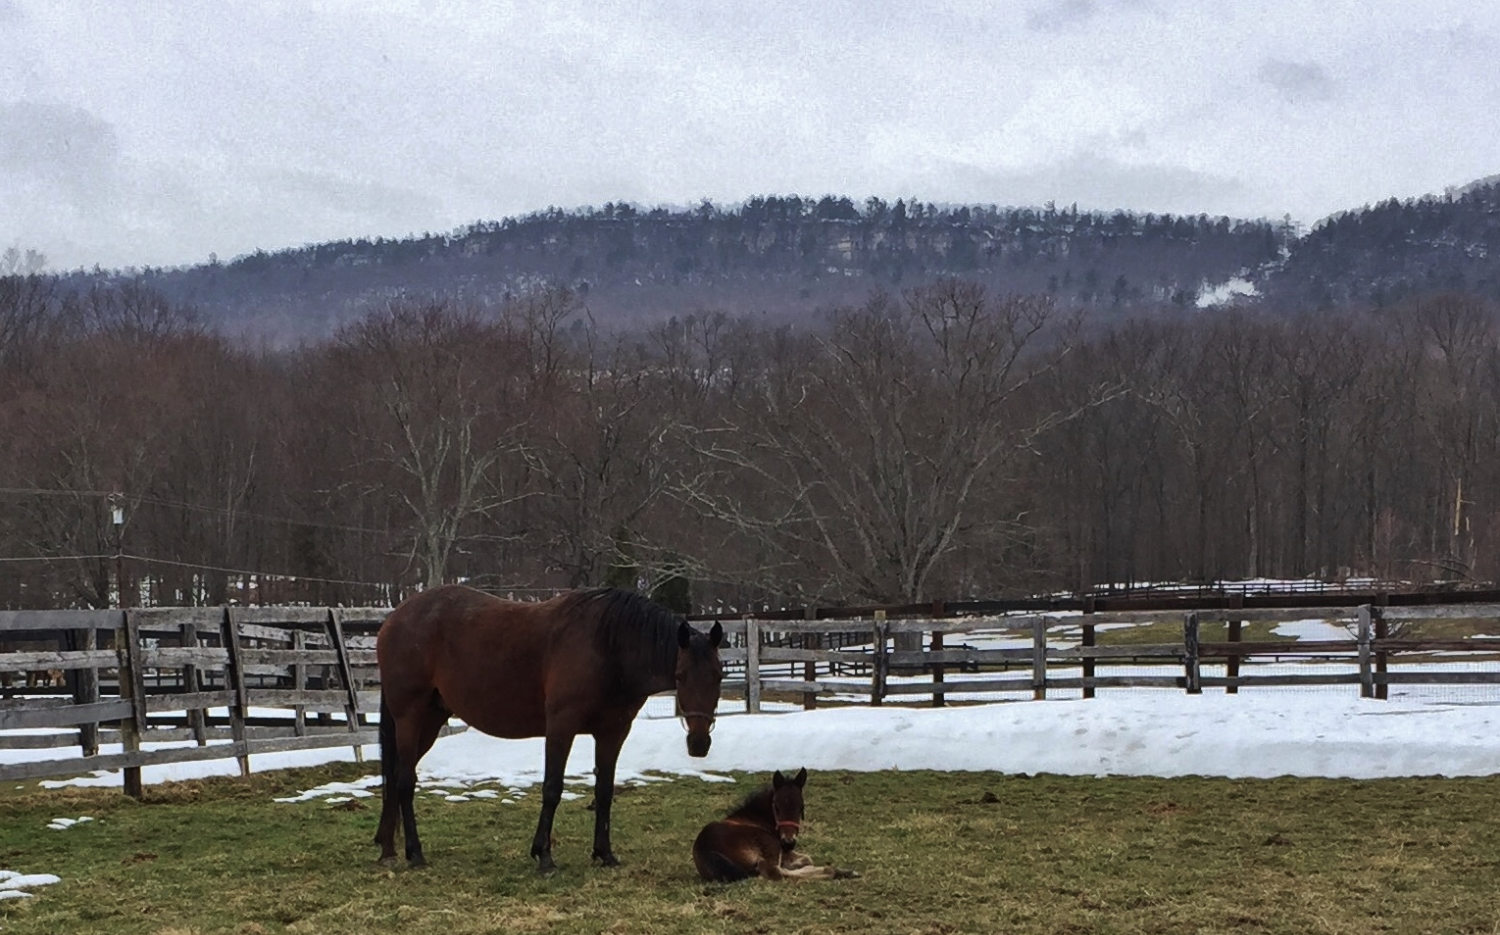 Handsoffmycookie and colt